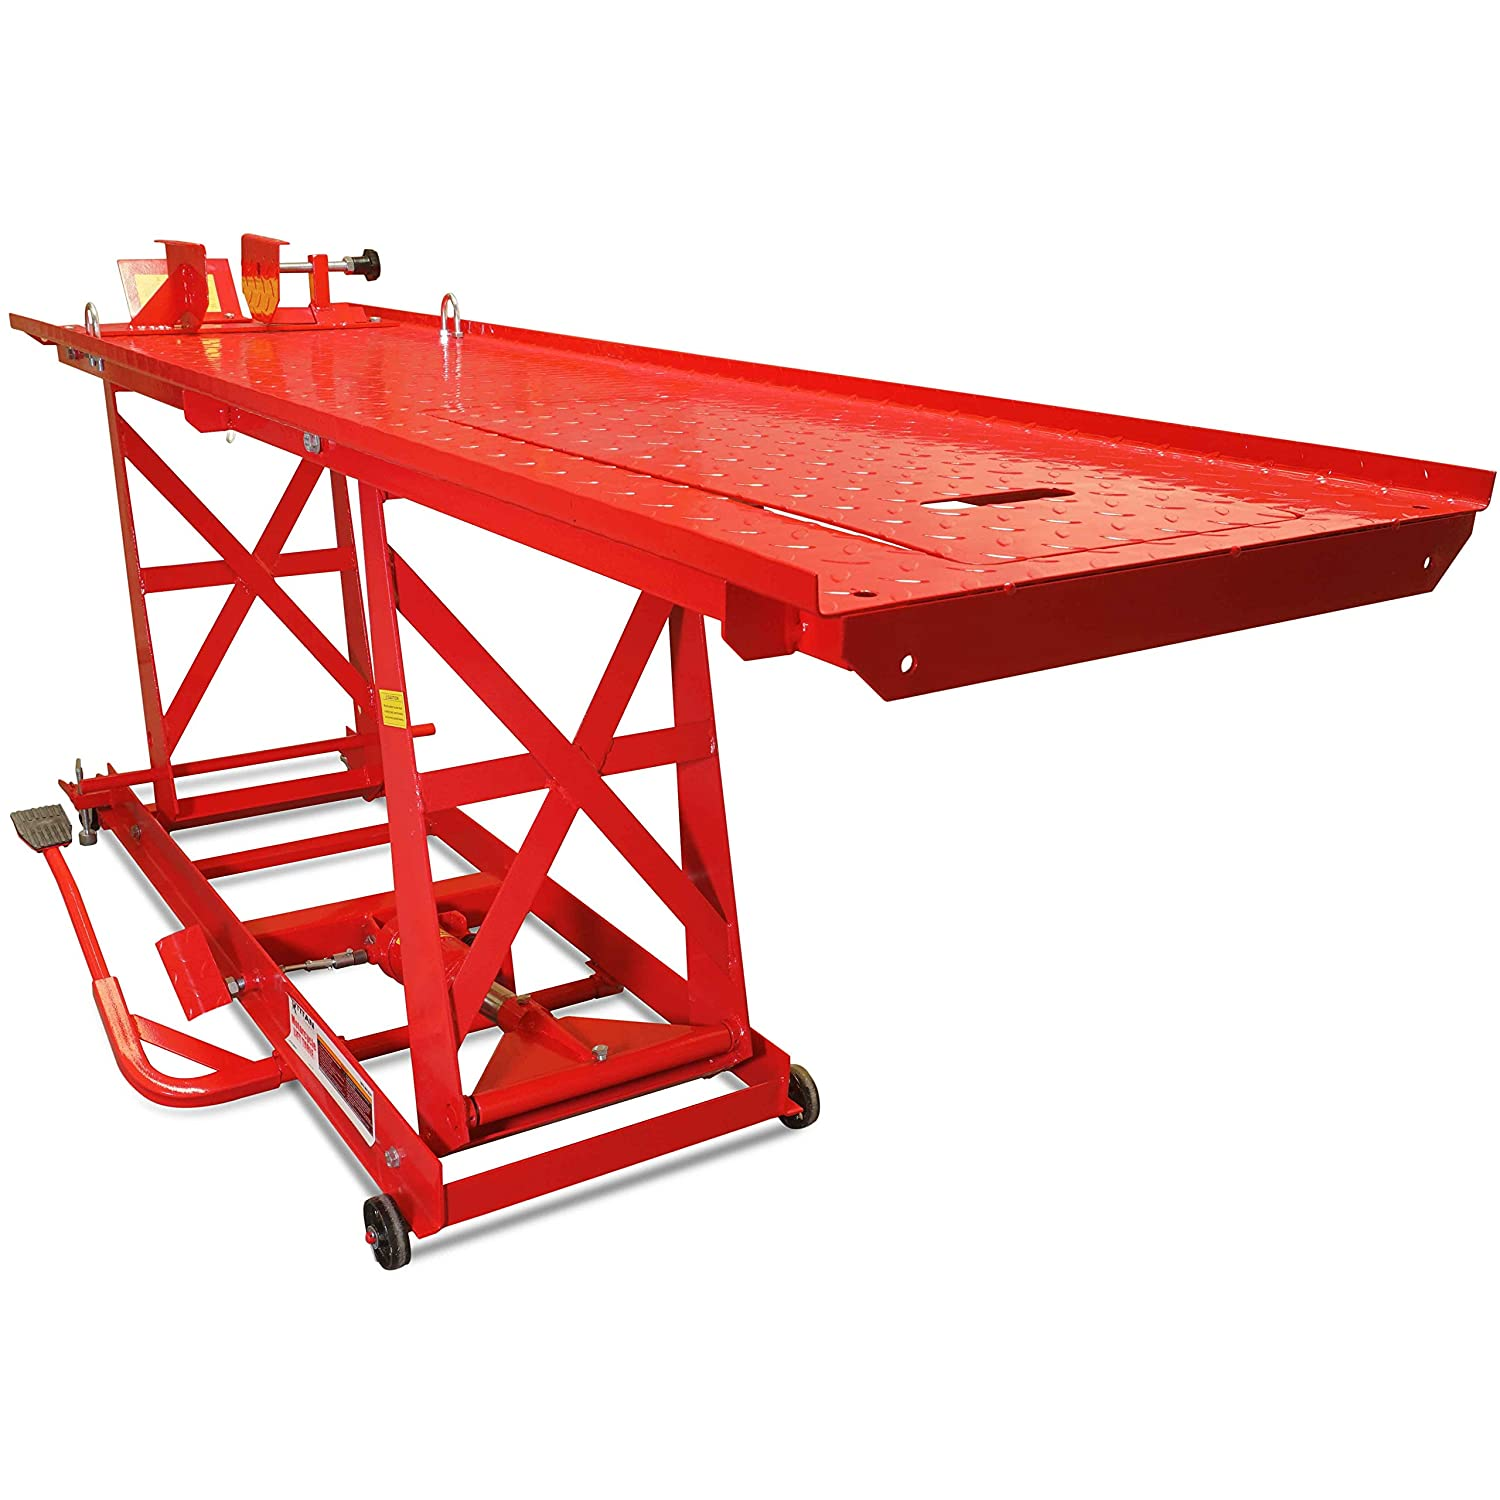 Titan Ramps 1,000 lb Hydraulic Motorcycle Lift Table Extra Long Heavy Duty